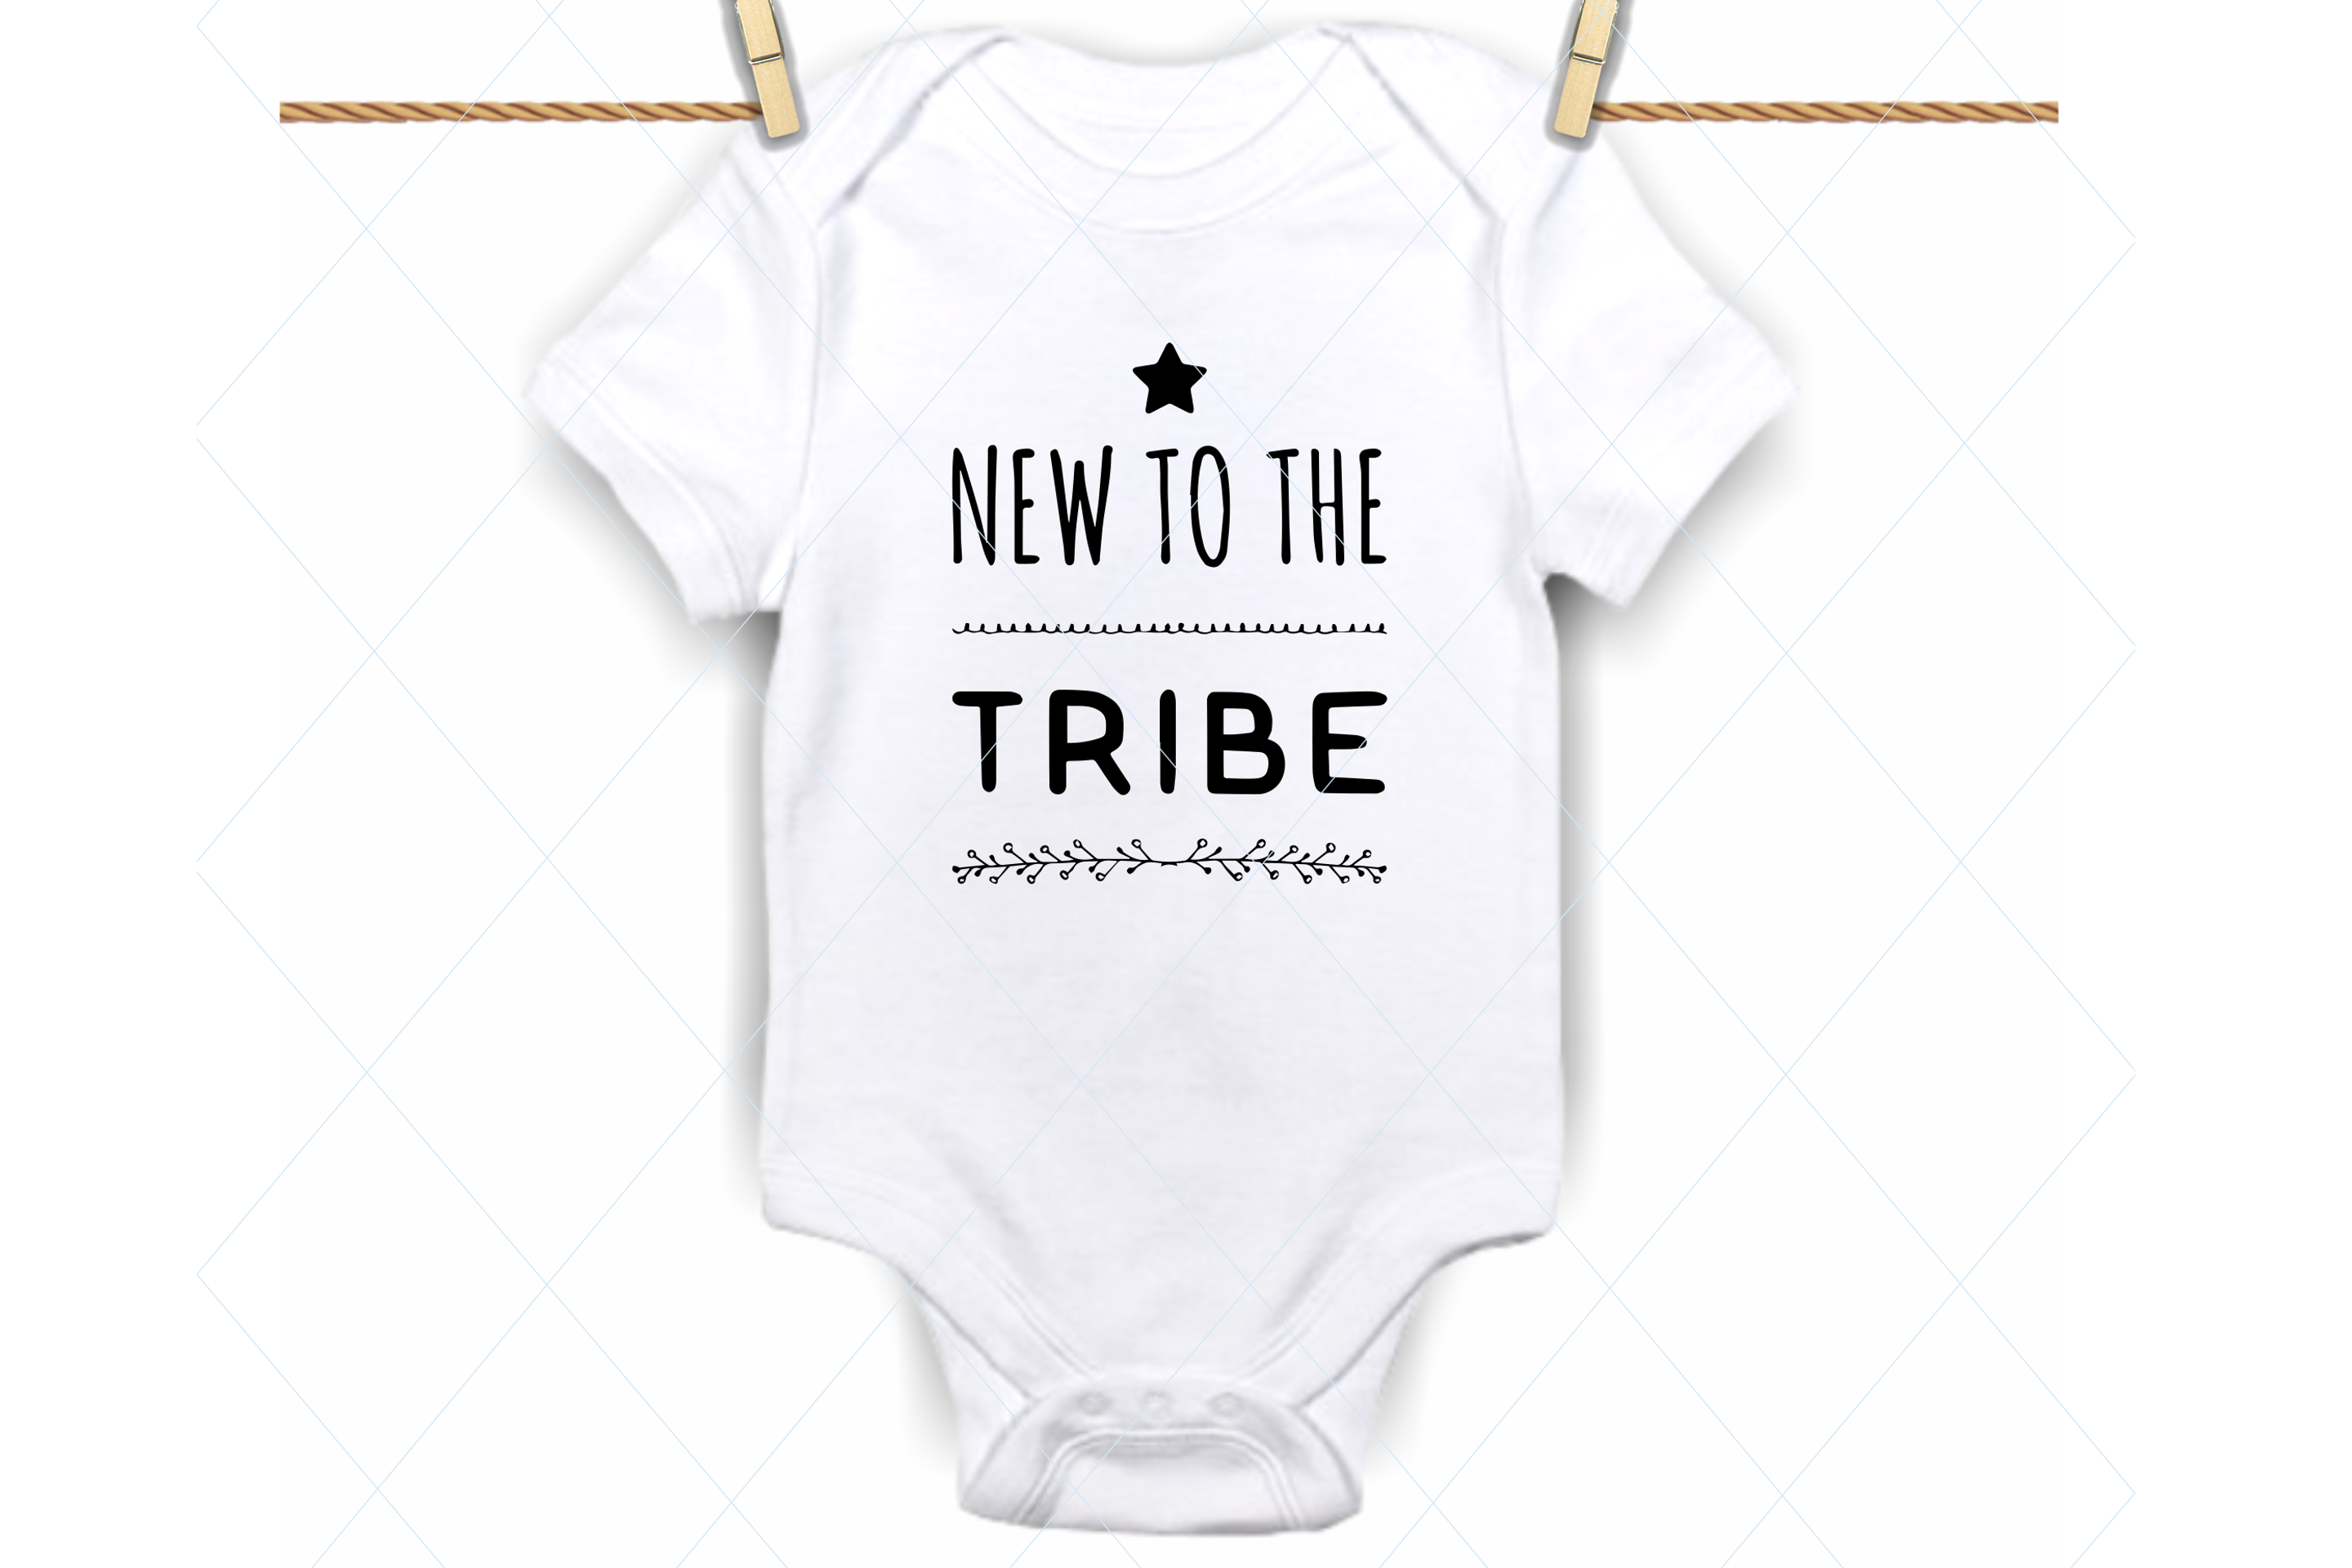 Download Free New To The Tribe Svg Baby Onesie Svg Graphic By Thelovebyrds for Cricut Explore, Silhouette and other cutting machines.